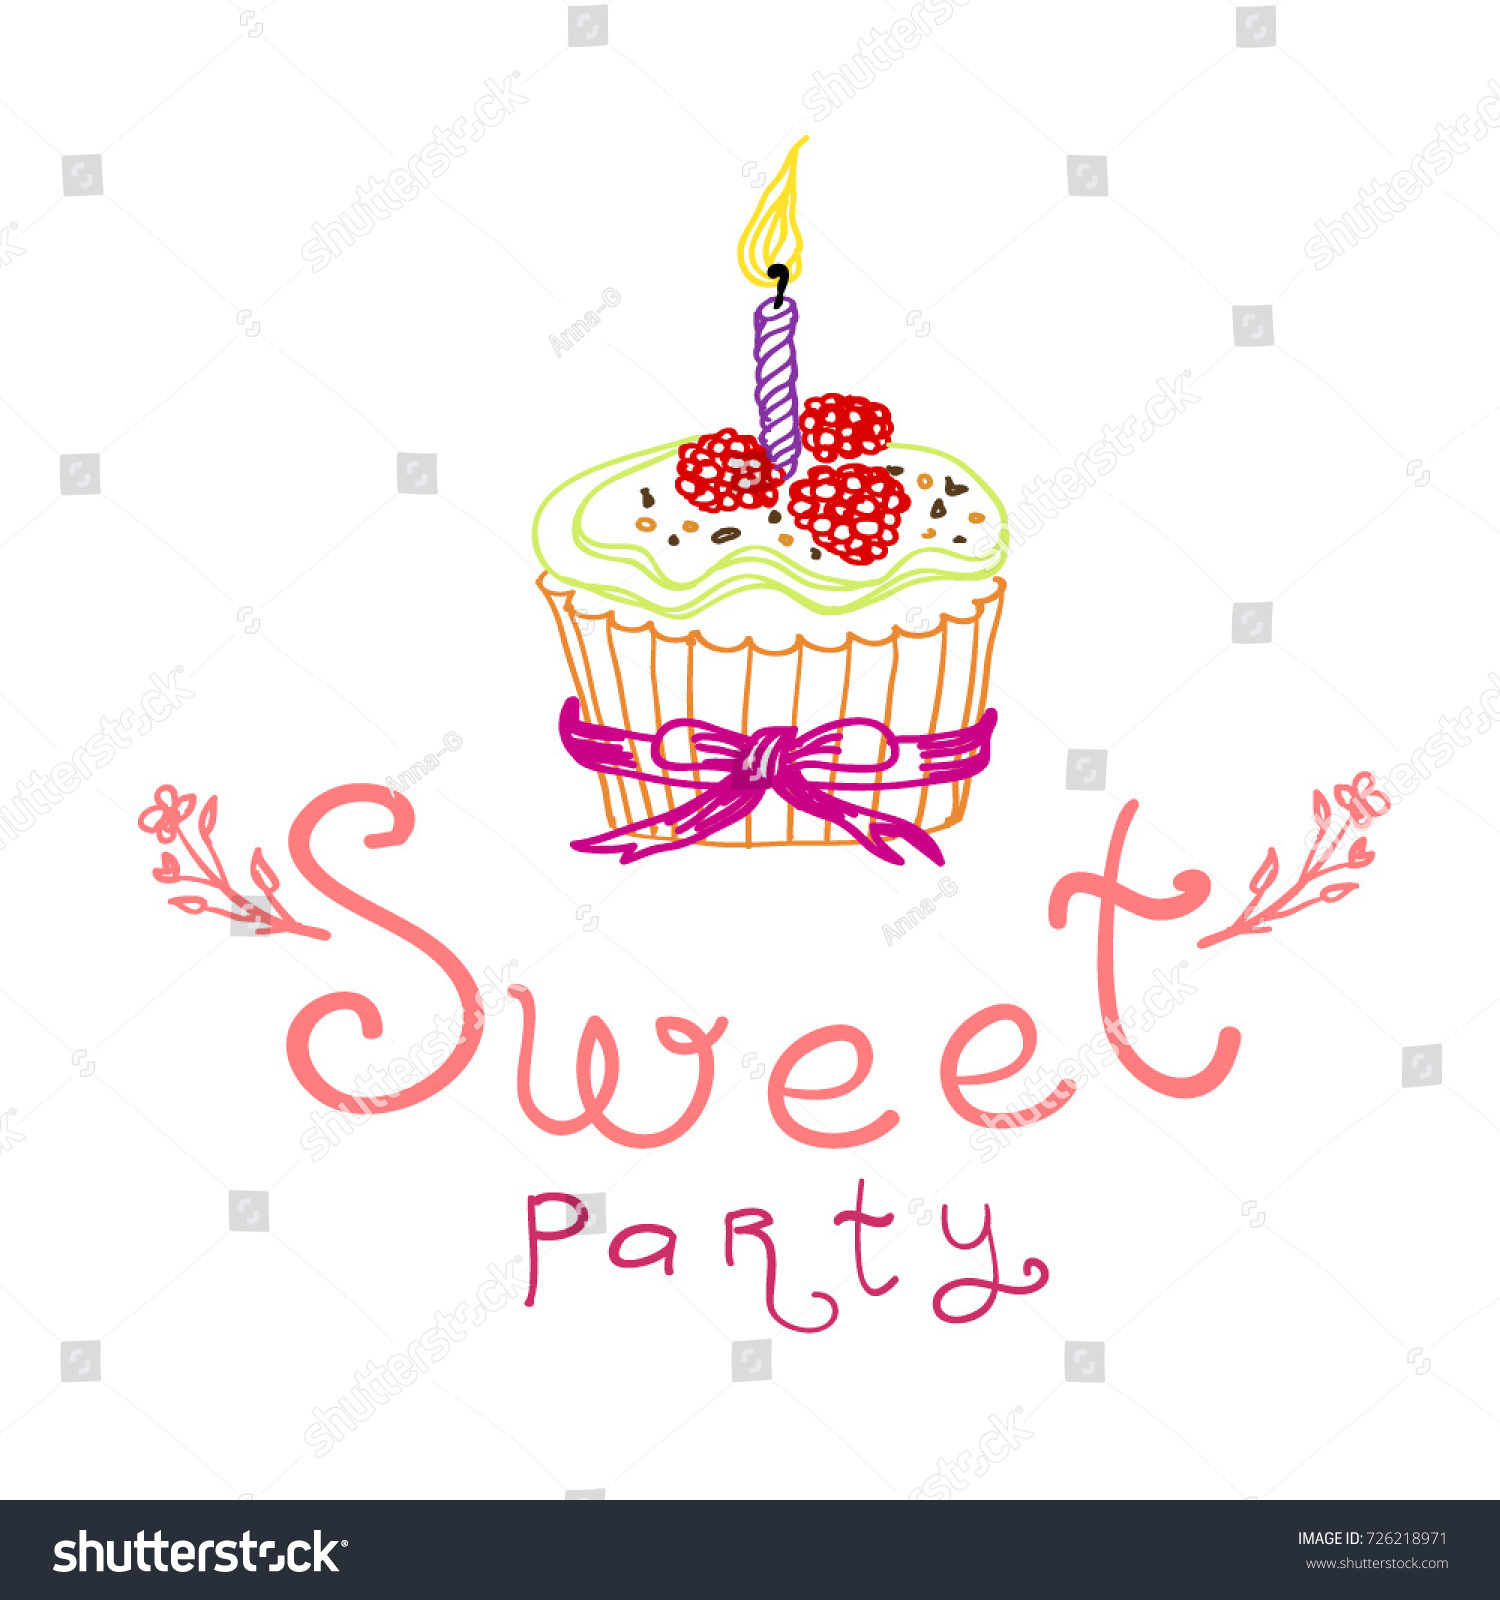 Sweet party invitation card birthday party stock vector 726218971 sweet party invitation card birthday party invitation cupcakes party vector illustration stopboris Images